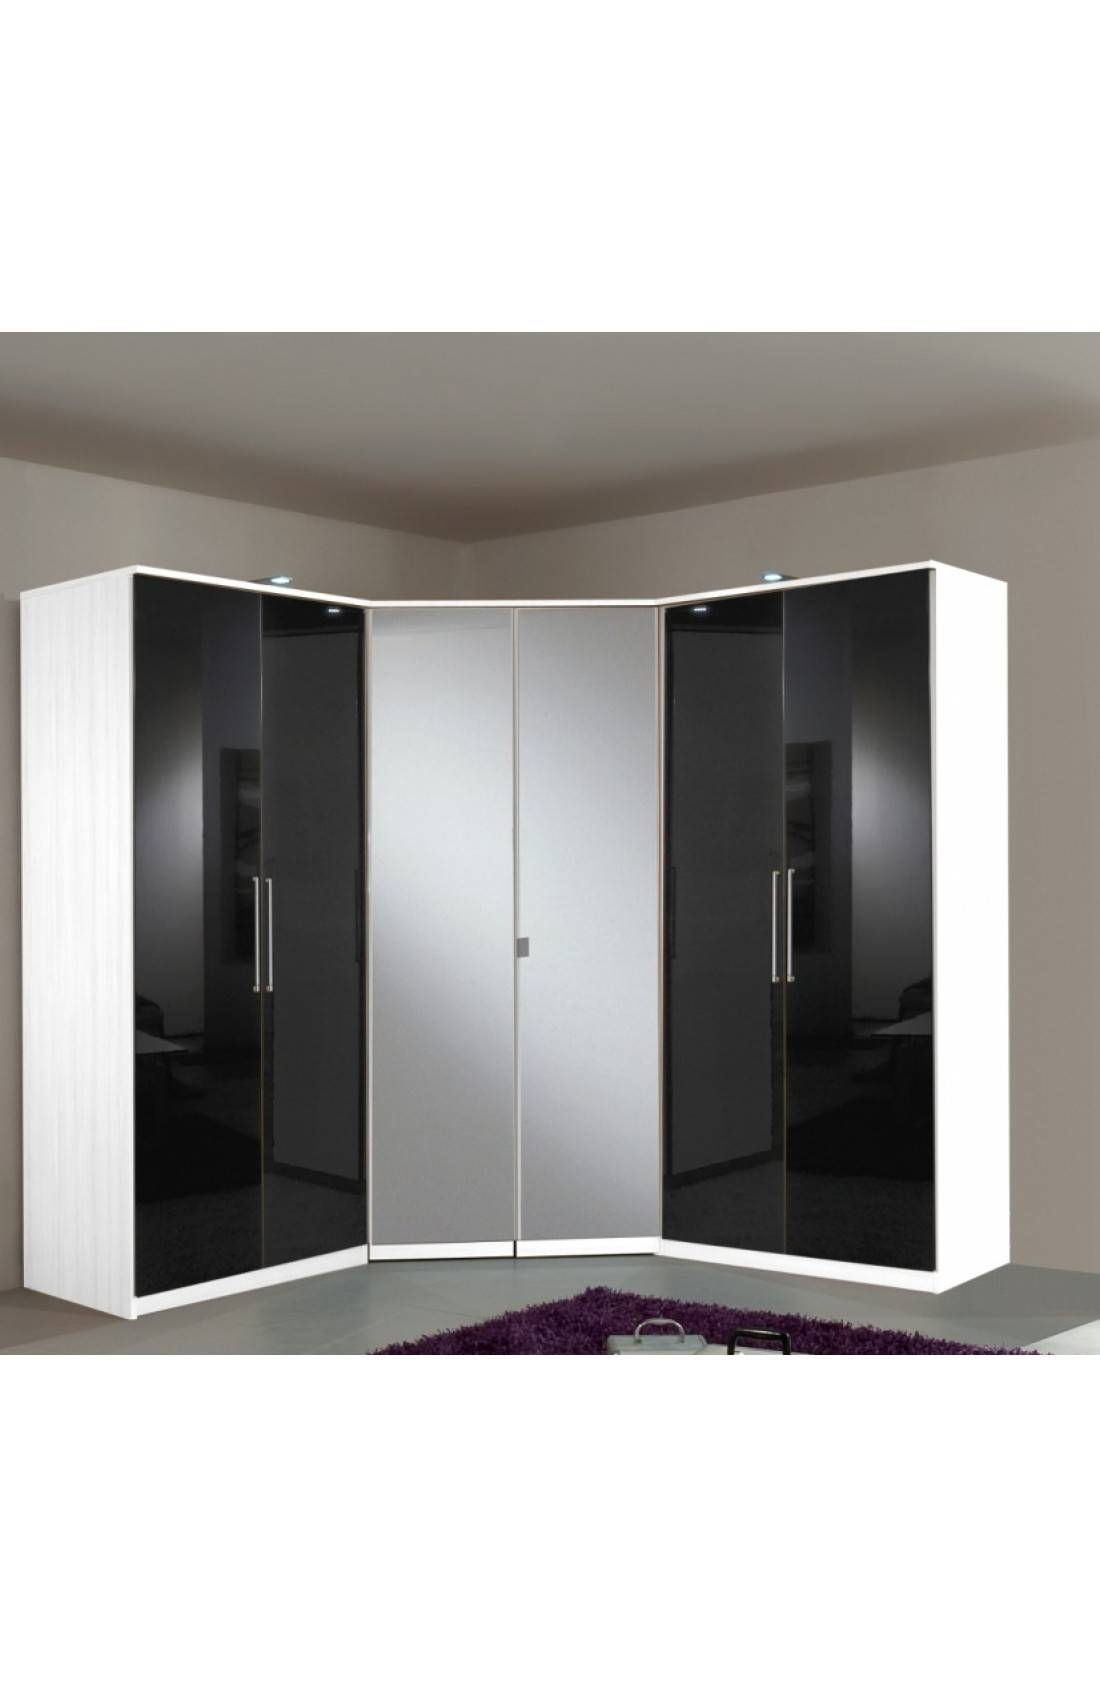 Slumberhaus 'gamma' 6 Door Corner Wardrobe Fitment With White With Black Gloss Mirror Wardrobes (Photo 5 of 15)